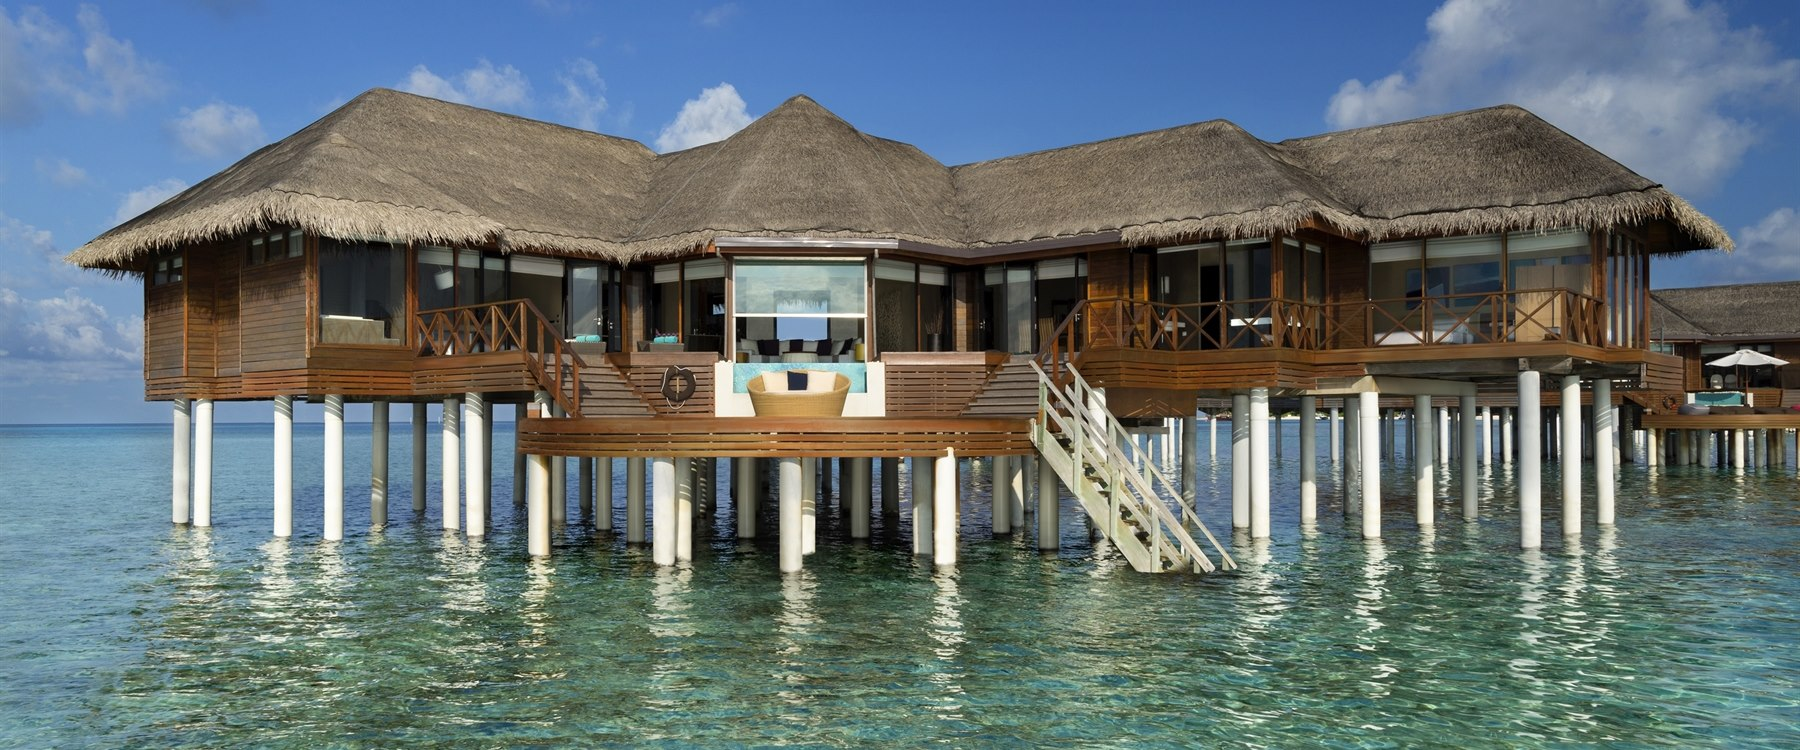 Ocean Pavilion with Pool at Huvafen Fushi, Maldives